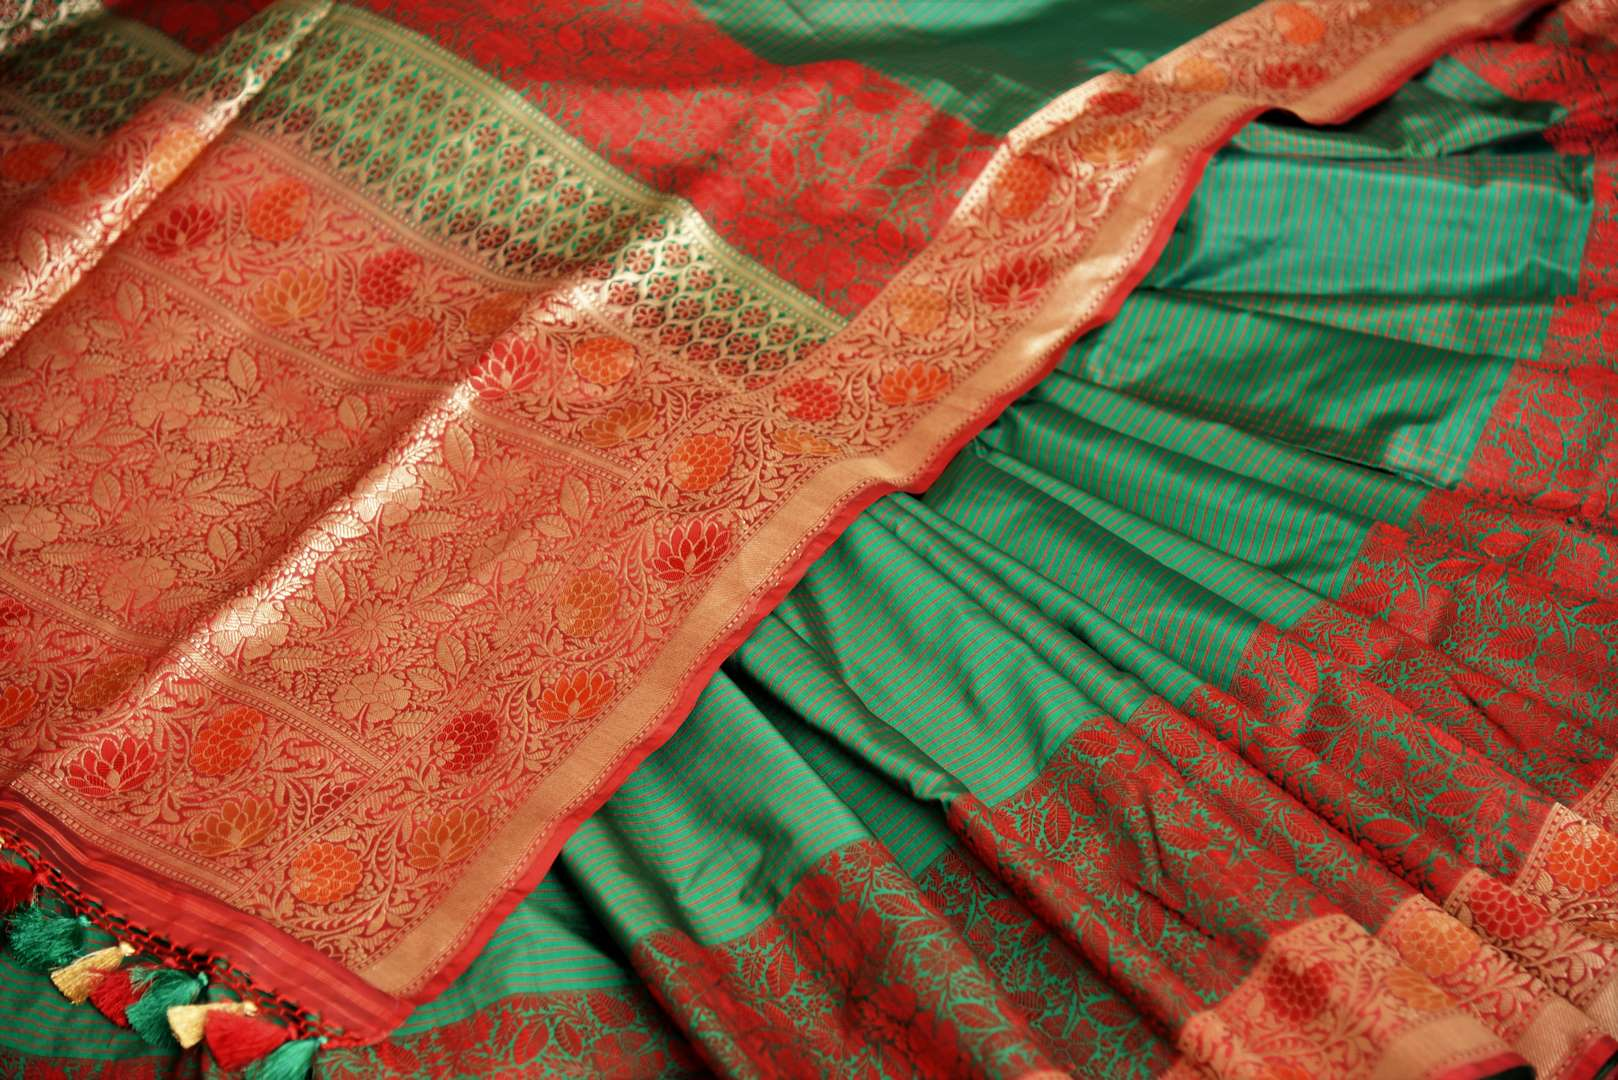 Buy dark green Banarasi silk saree online in USA with floral zari border. The saree is a rich drape for weddings and special occasions. If you are looking for Indian designer sarees, Banarasi silk sarees in USA, then Pure Elegance clothing store is your one-stop solution, shop now.-details